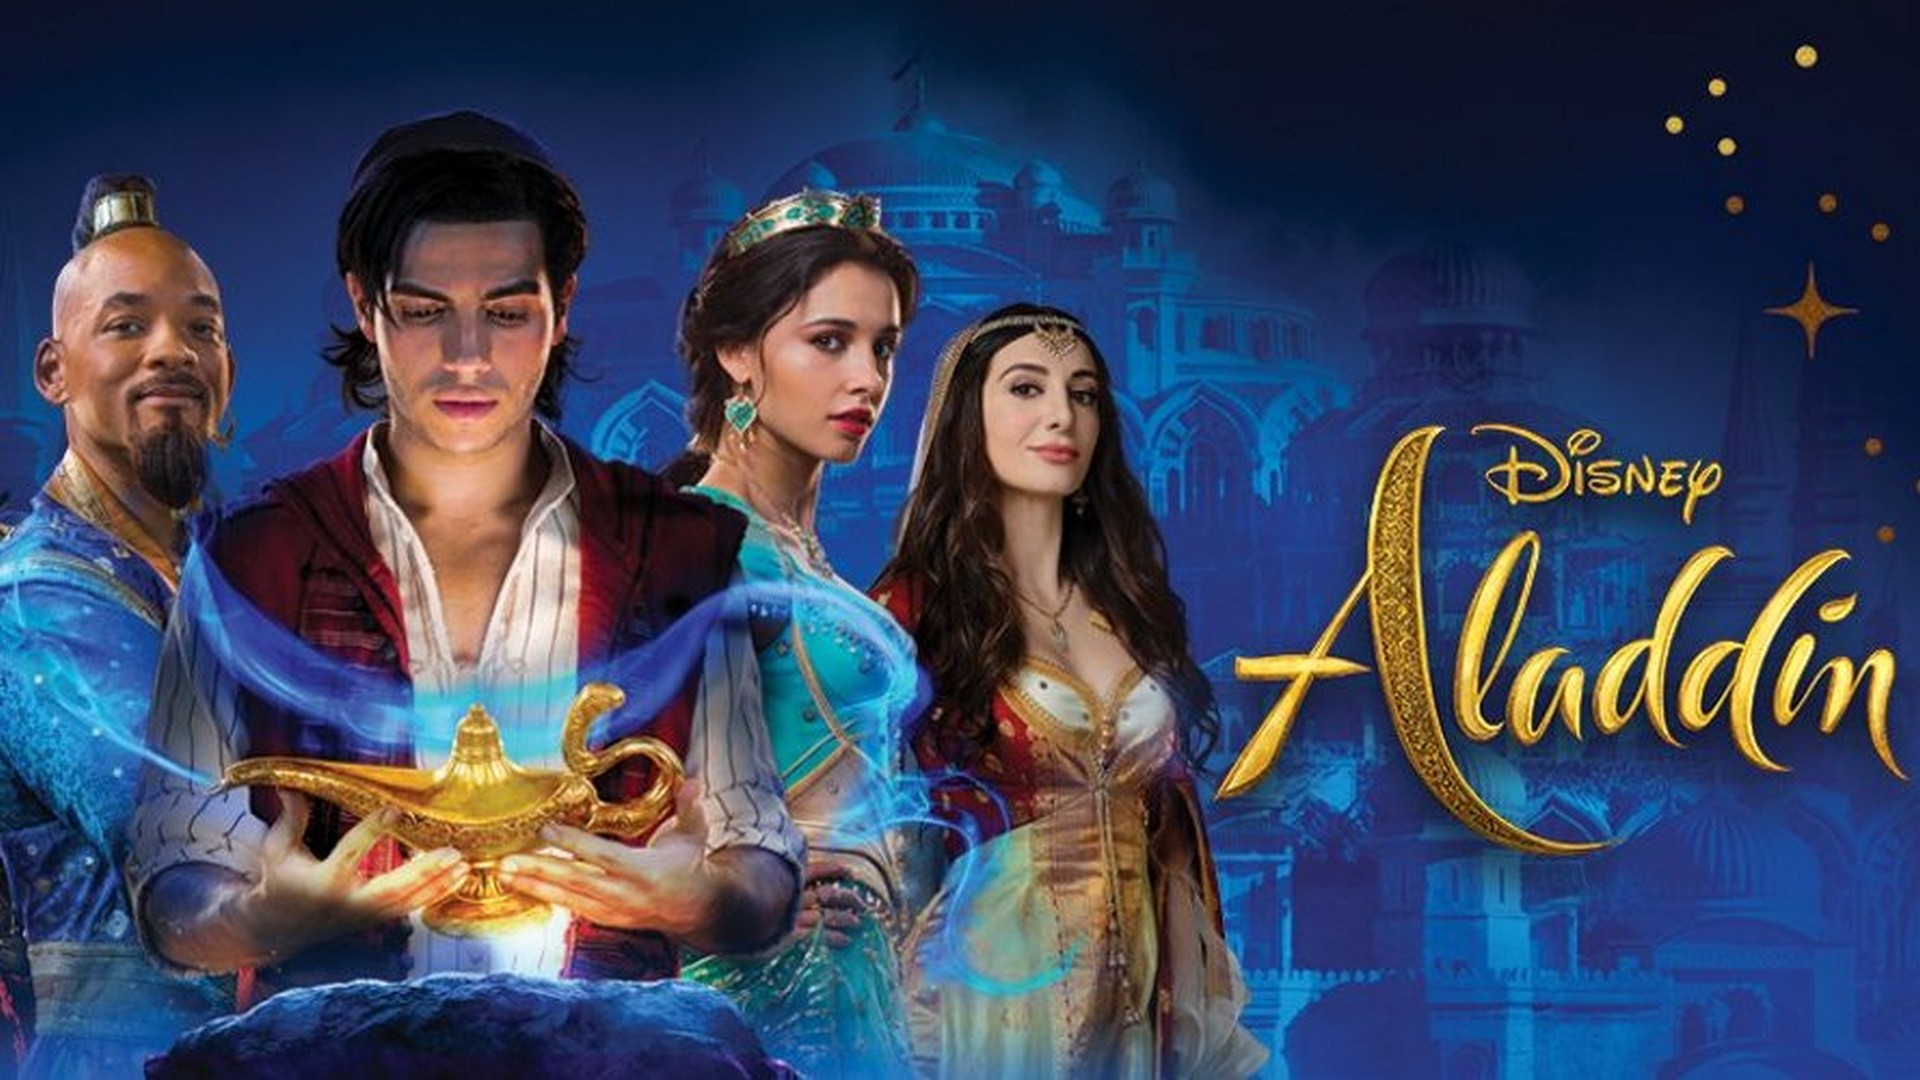 Aladdin In Hindi Movie Poster